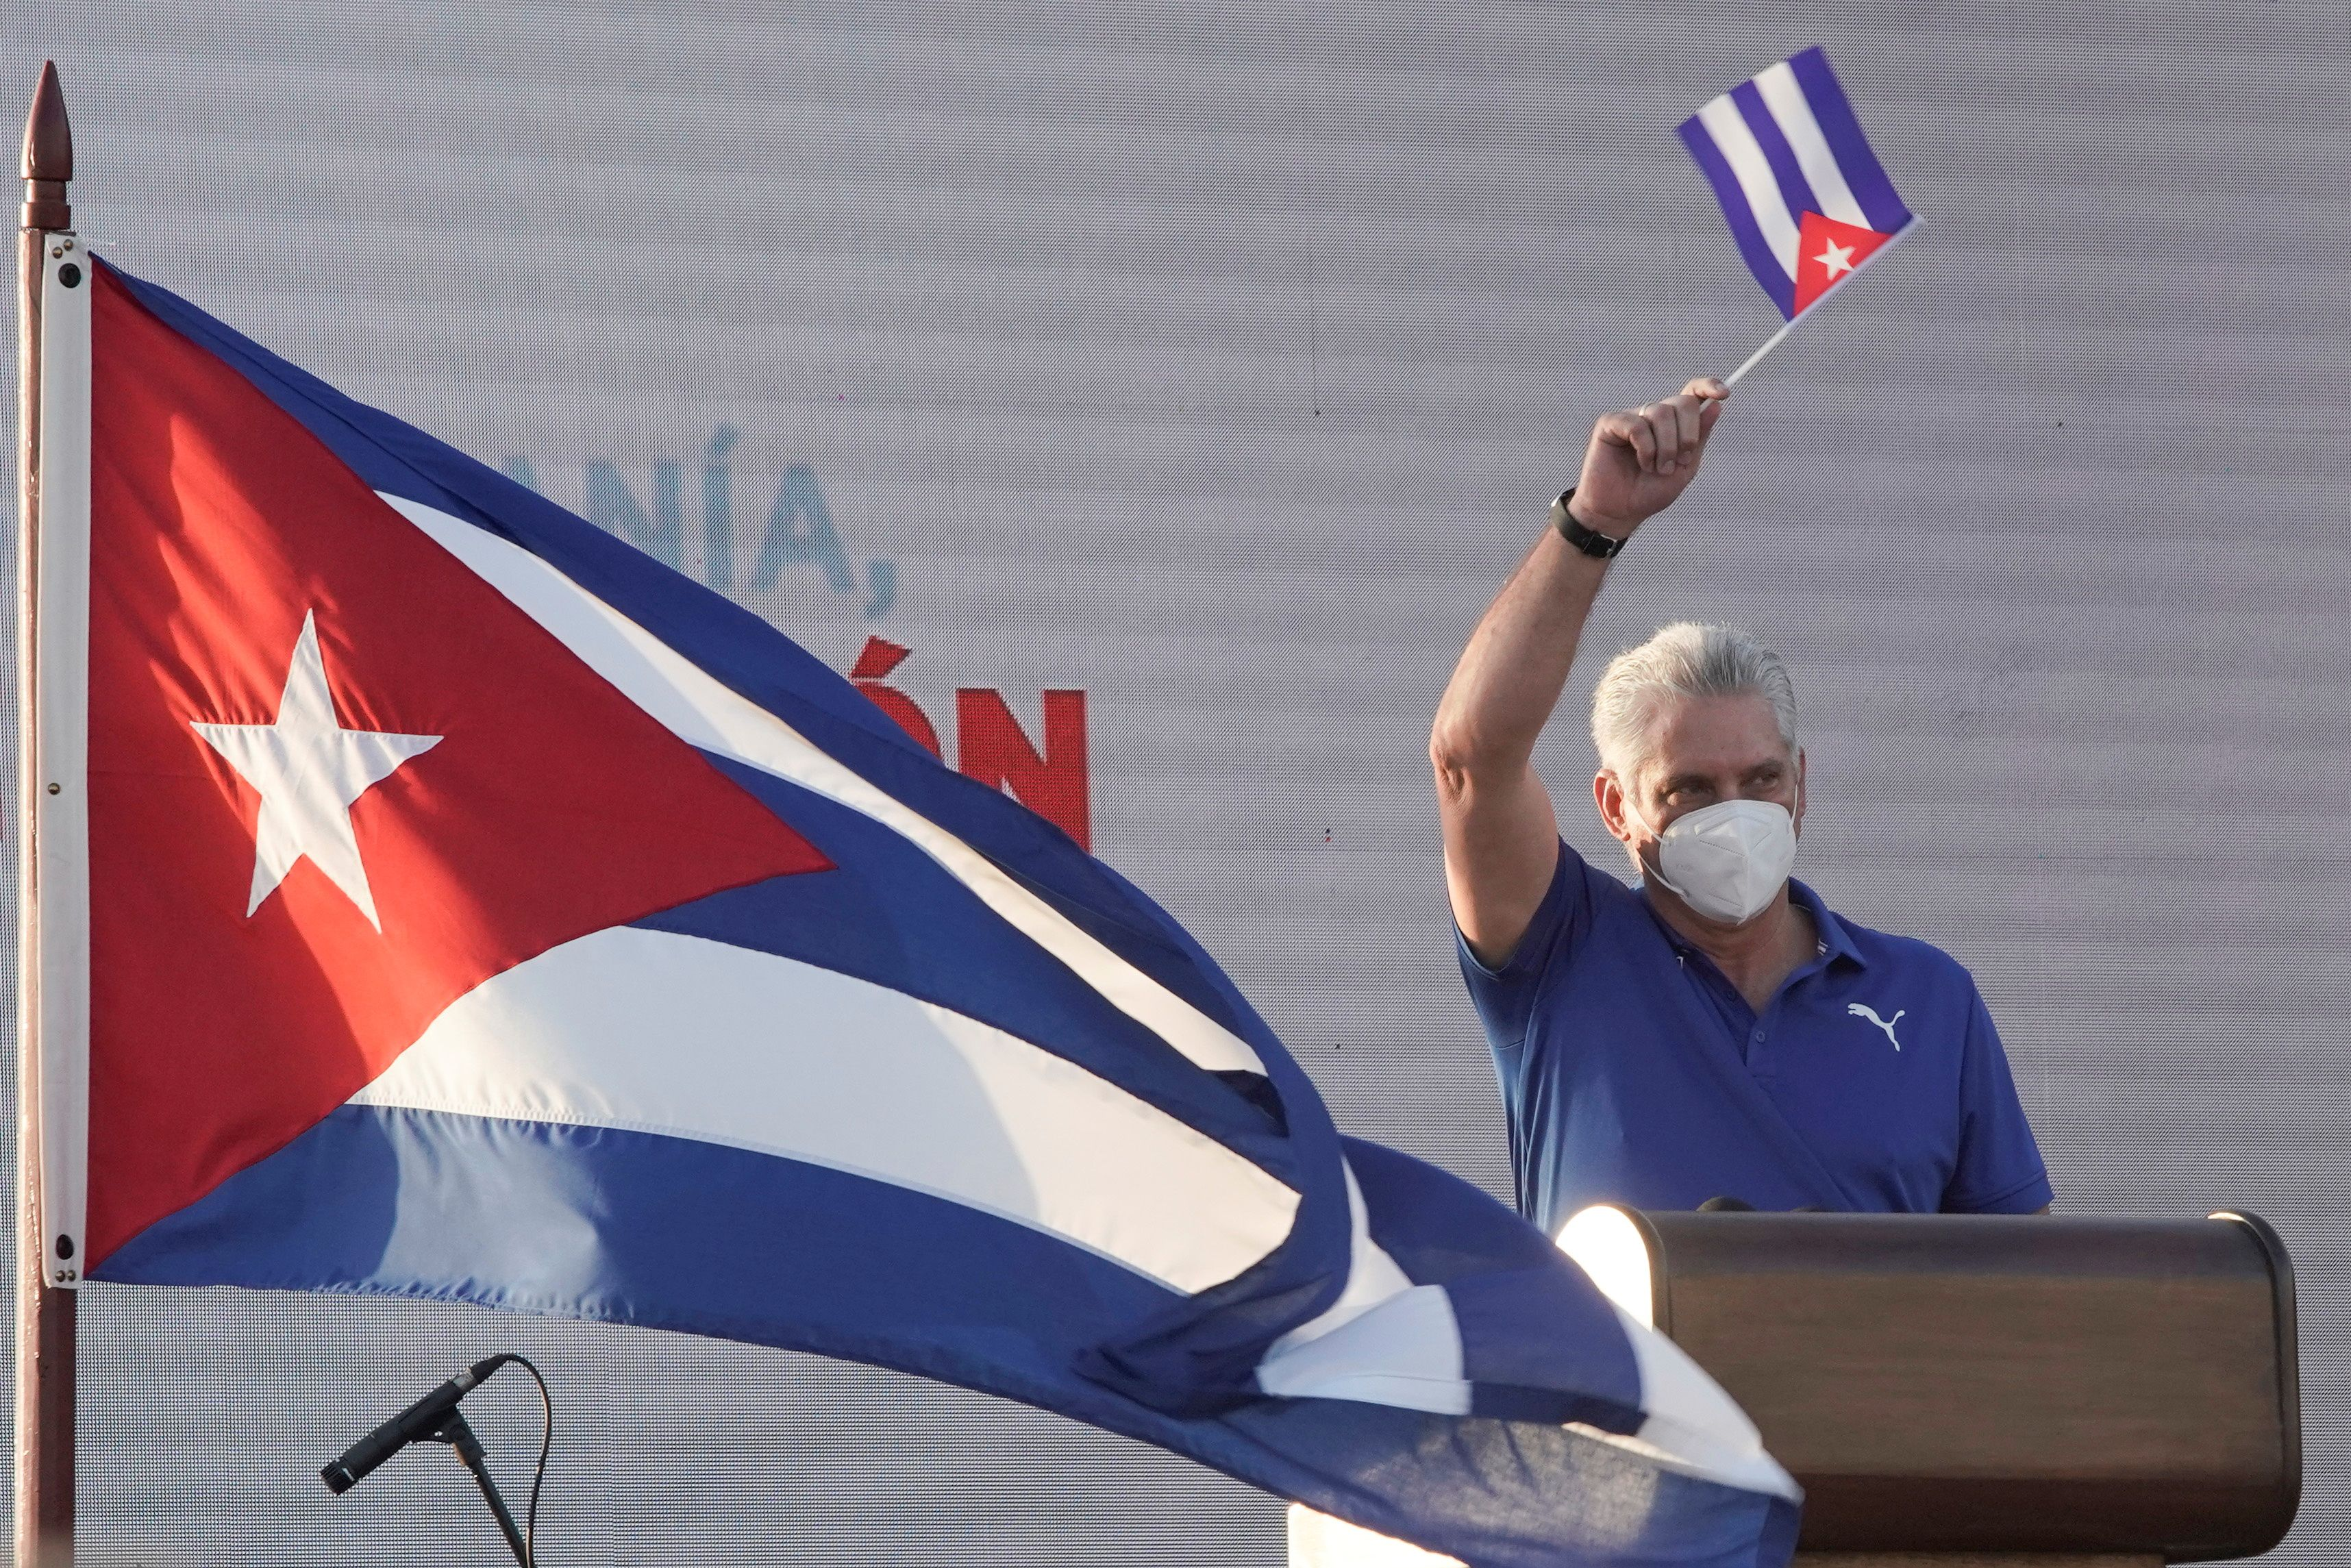 Cuba's President and First Secretary of the Communist Party Miguel Diaz-Canel waves a Cuban national flag as he delivers a speech during a rally in Havana, Cuba, July 17, 2021. REUTERS/Alexandre Meneghini